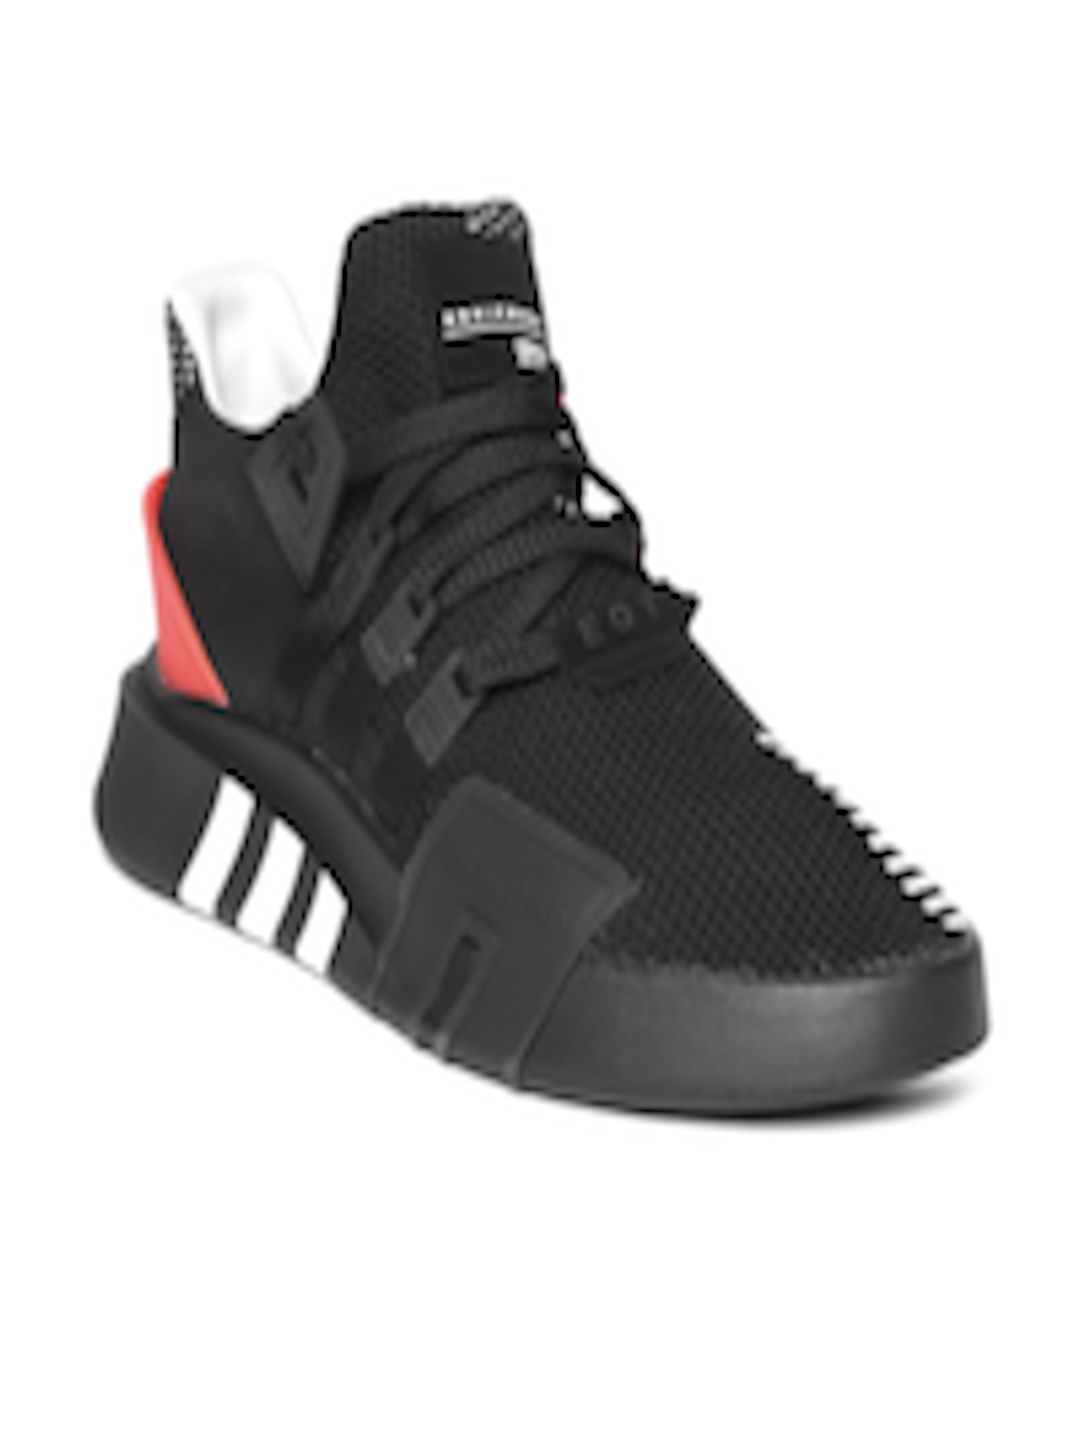 promo code ad2eb 1a2ee Buy ADIDAS Originals Men Black EQT BASK ADV Sneakers - - Footwear for Men